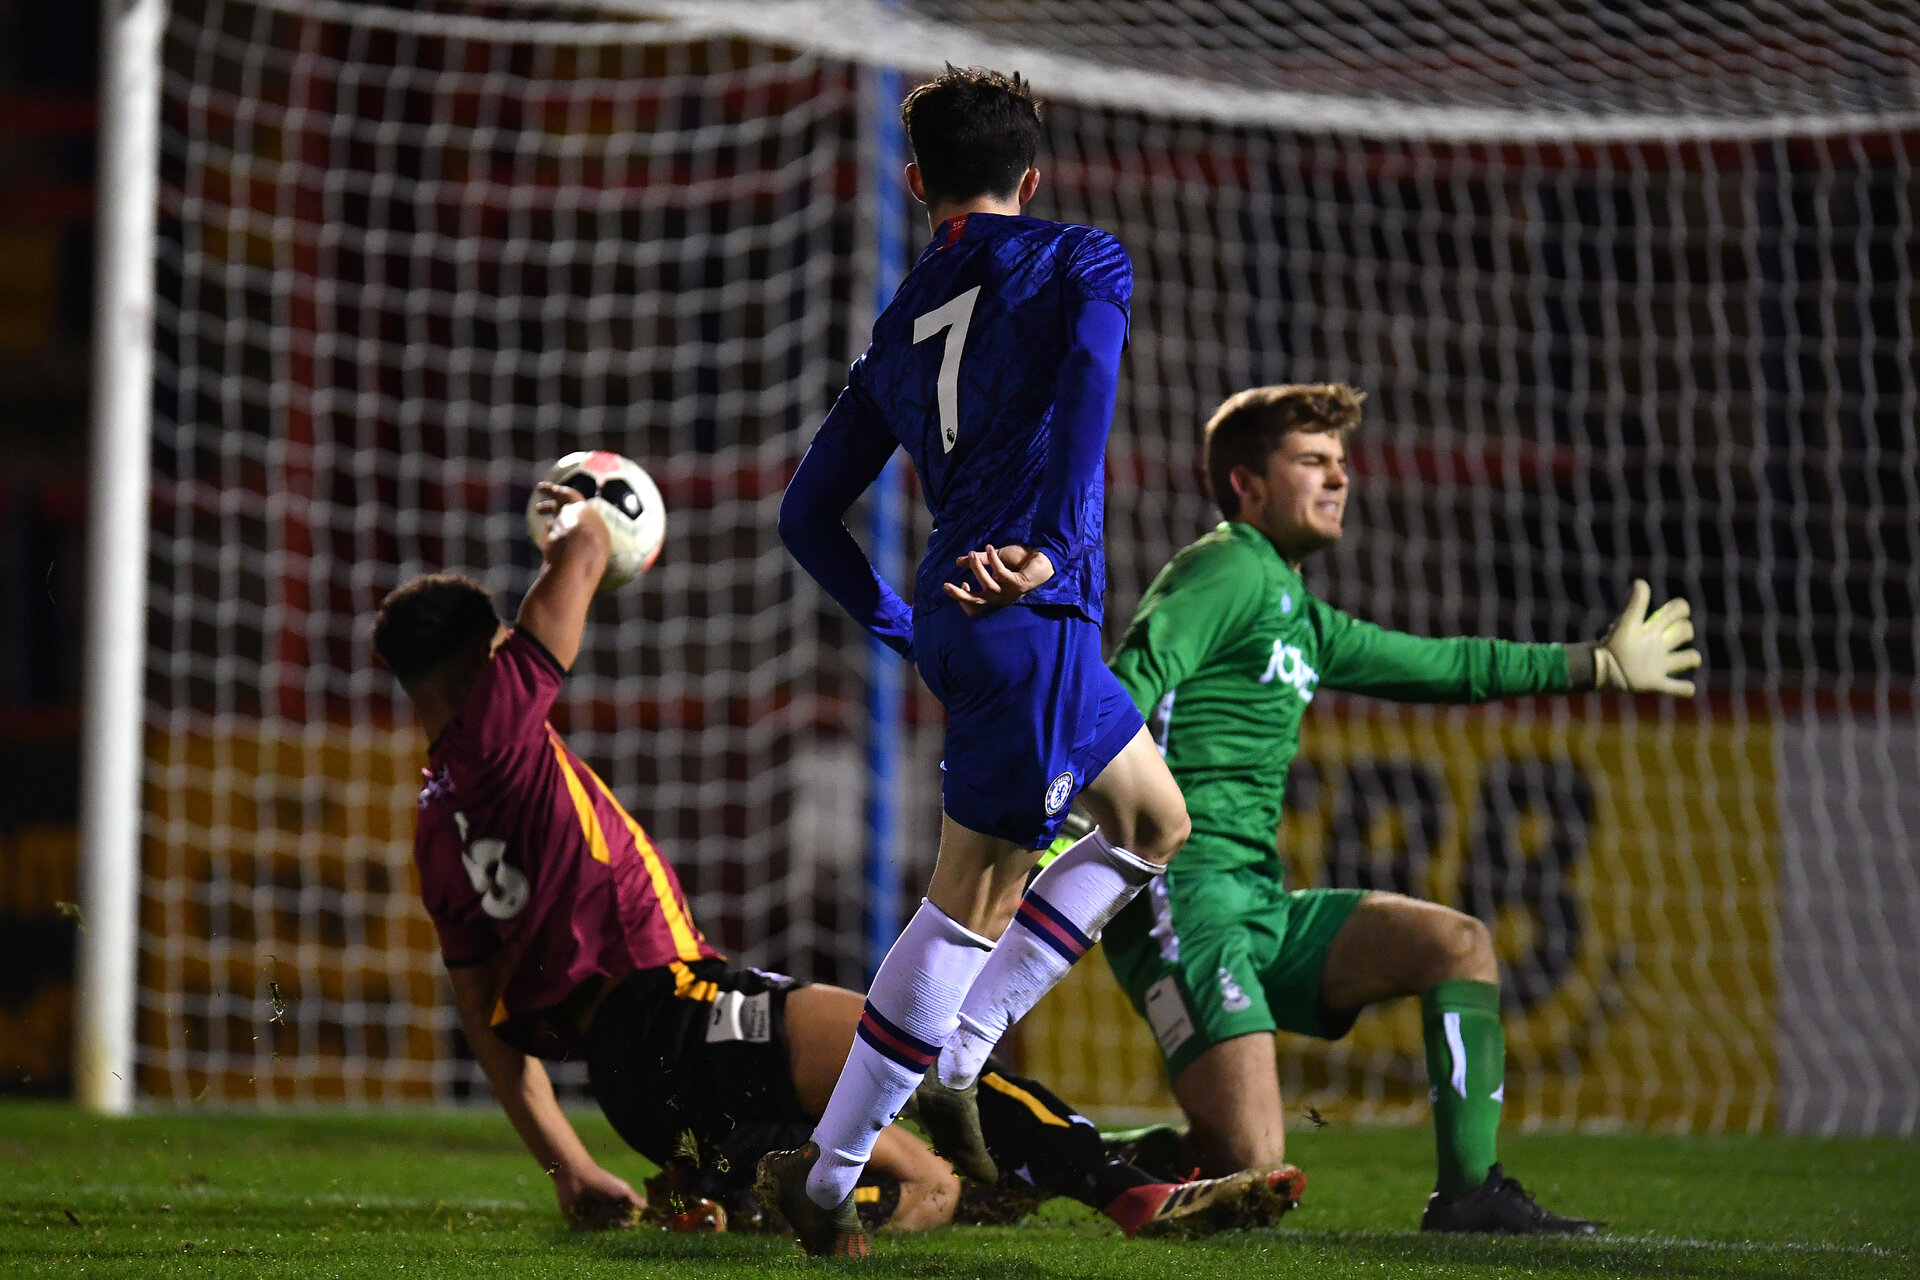 ALDERSHOT, ENGLAND - JANUARY 15: Valentino Livramento of Chelsea shoots during the FA Youth Cup: Fourth Round match between Chelsea FC and Bradford City on January 15, 2020 in Aldershot, England. (Photo by Justin Setterfield/Getty Images)